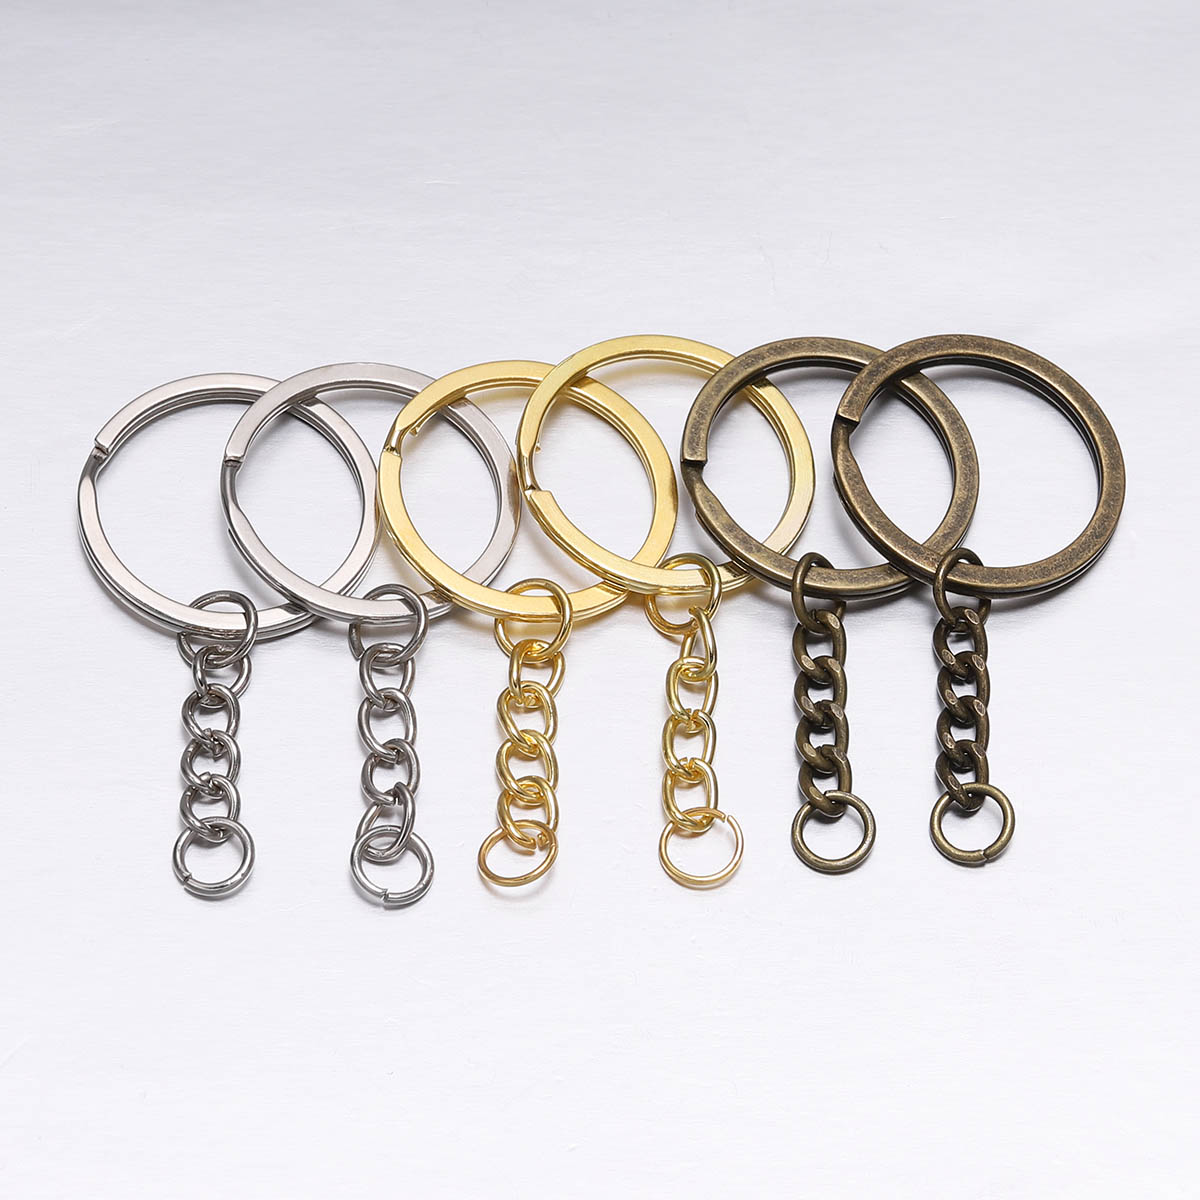 10 Pcs 30mm Polished Silver Gold Long Round Split Keyrings Keychain With Short Chain Key Rings Supplies For DIY Jewelry Making